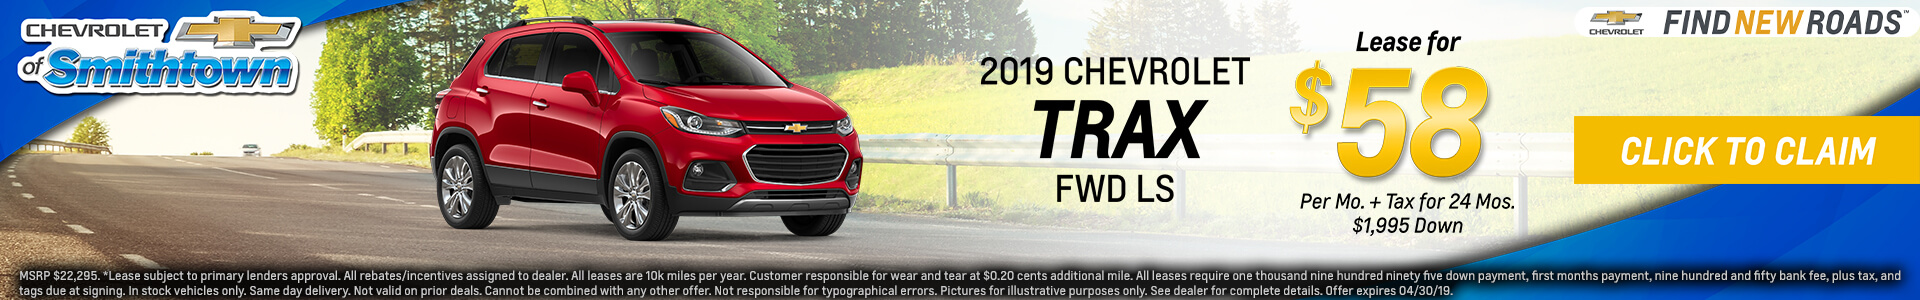 Chevrolet Trax $58 Lease